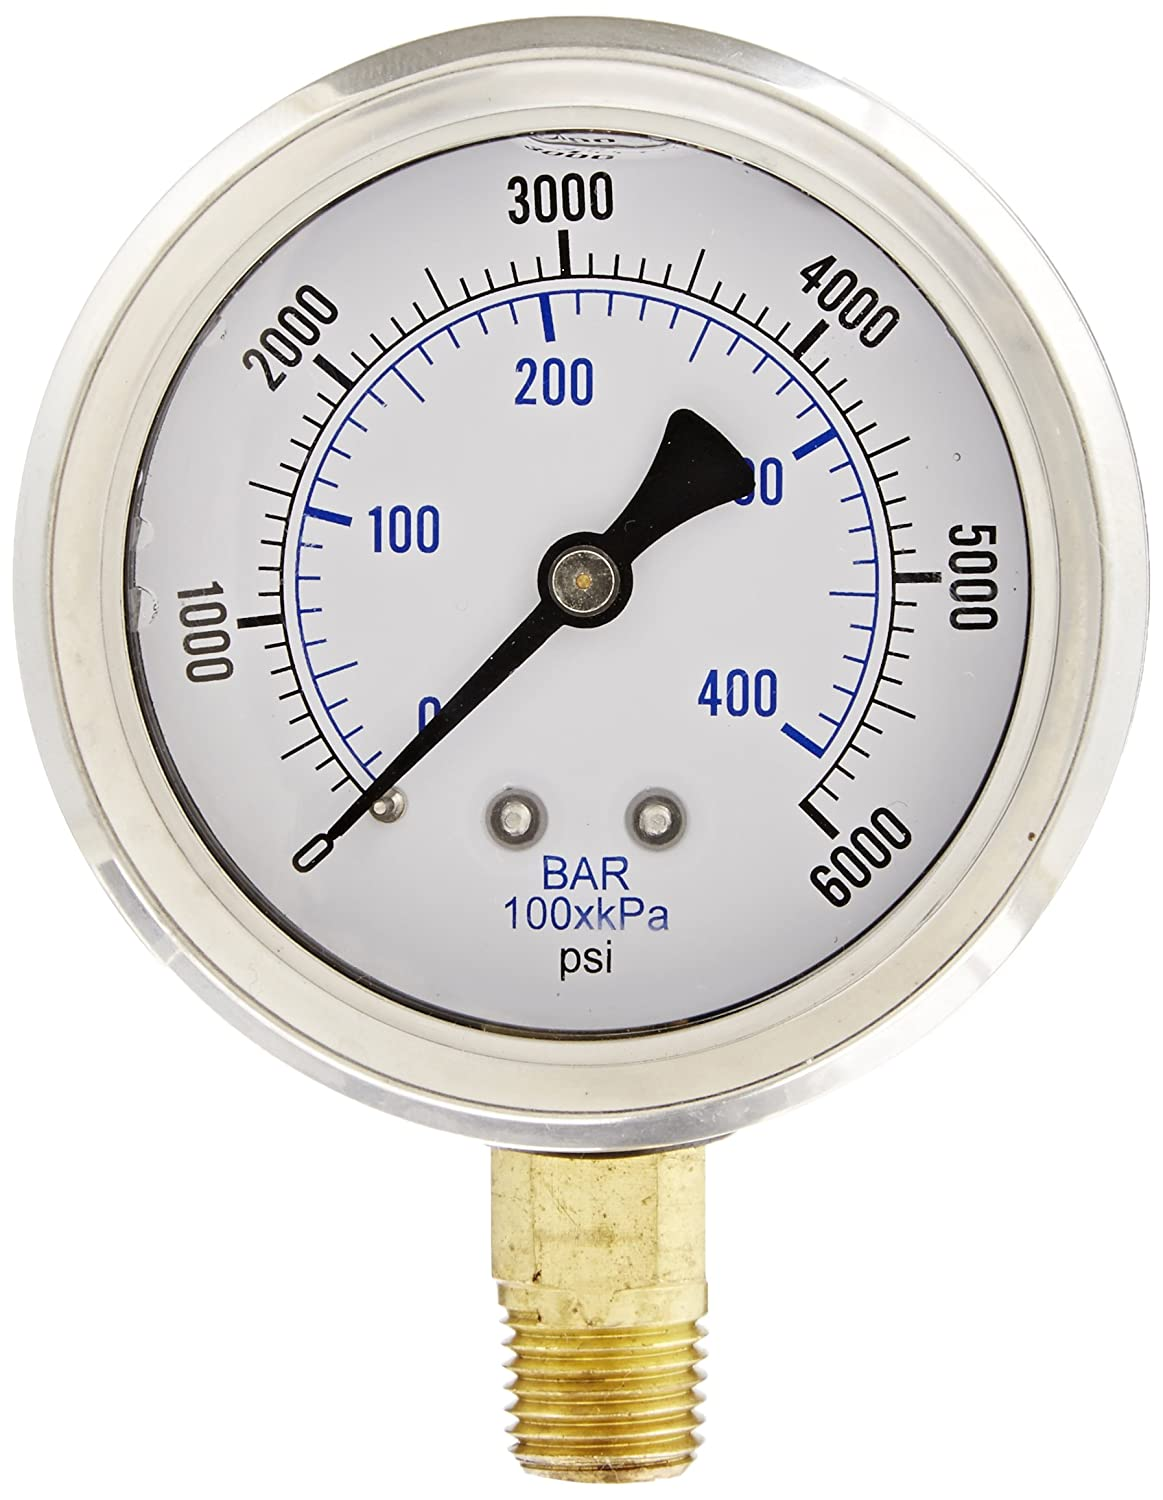 PIC Gauge PRO 201L 254S Glycerin Filled Industrial Bottom Mount Pressure Gauge with Stainless Steel Case Brass Internals Plastic Lens 2 1 2 Dial Size 1 4 Male NPT 0 6000 psi